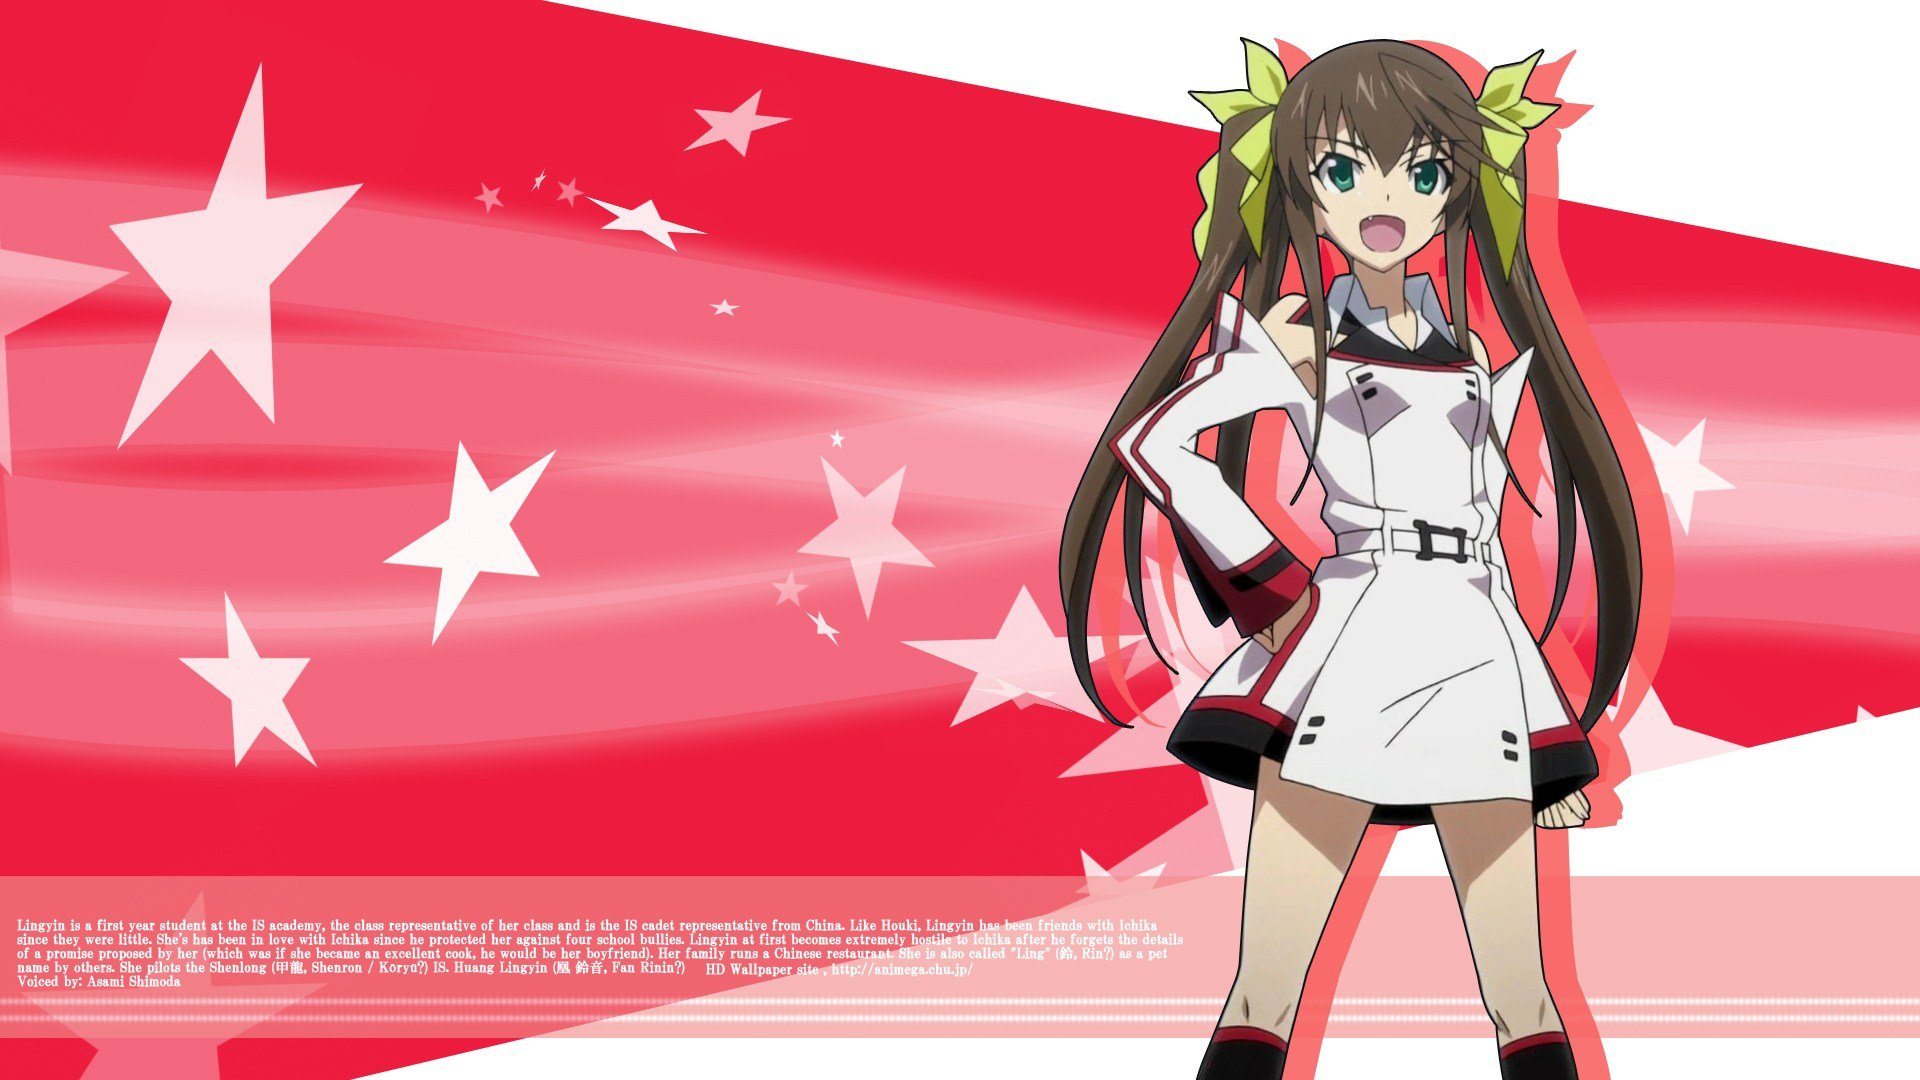 Download full hd 1920x1080 Infinite Stratos computer wallpaper ID:163189 for free